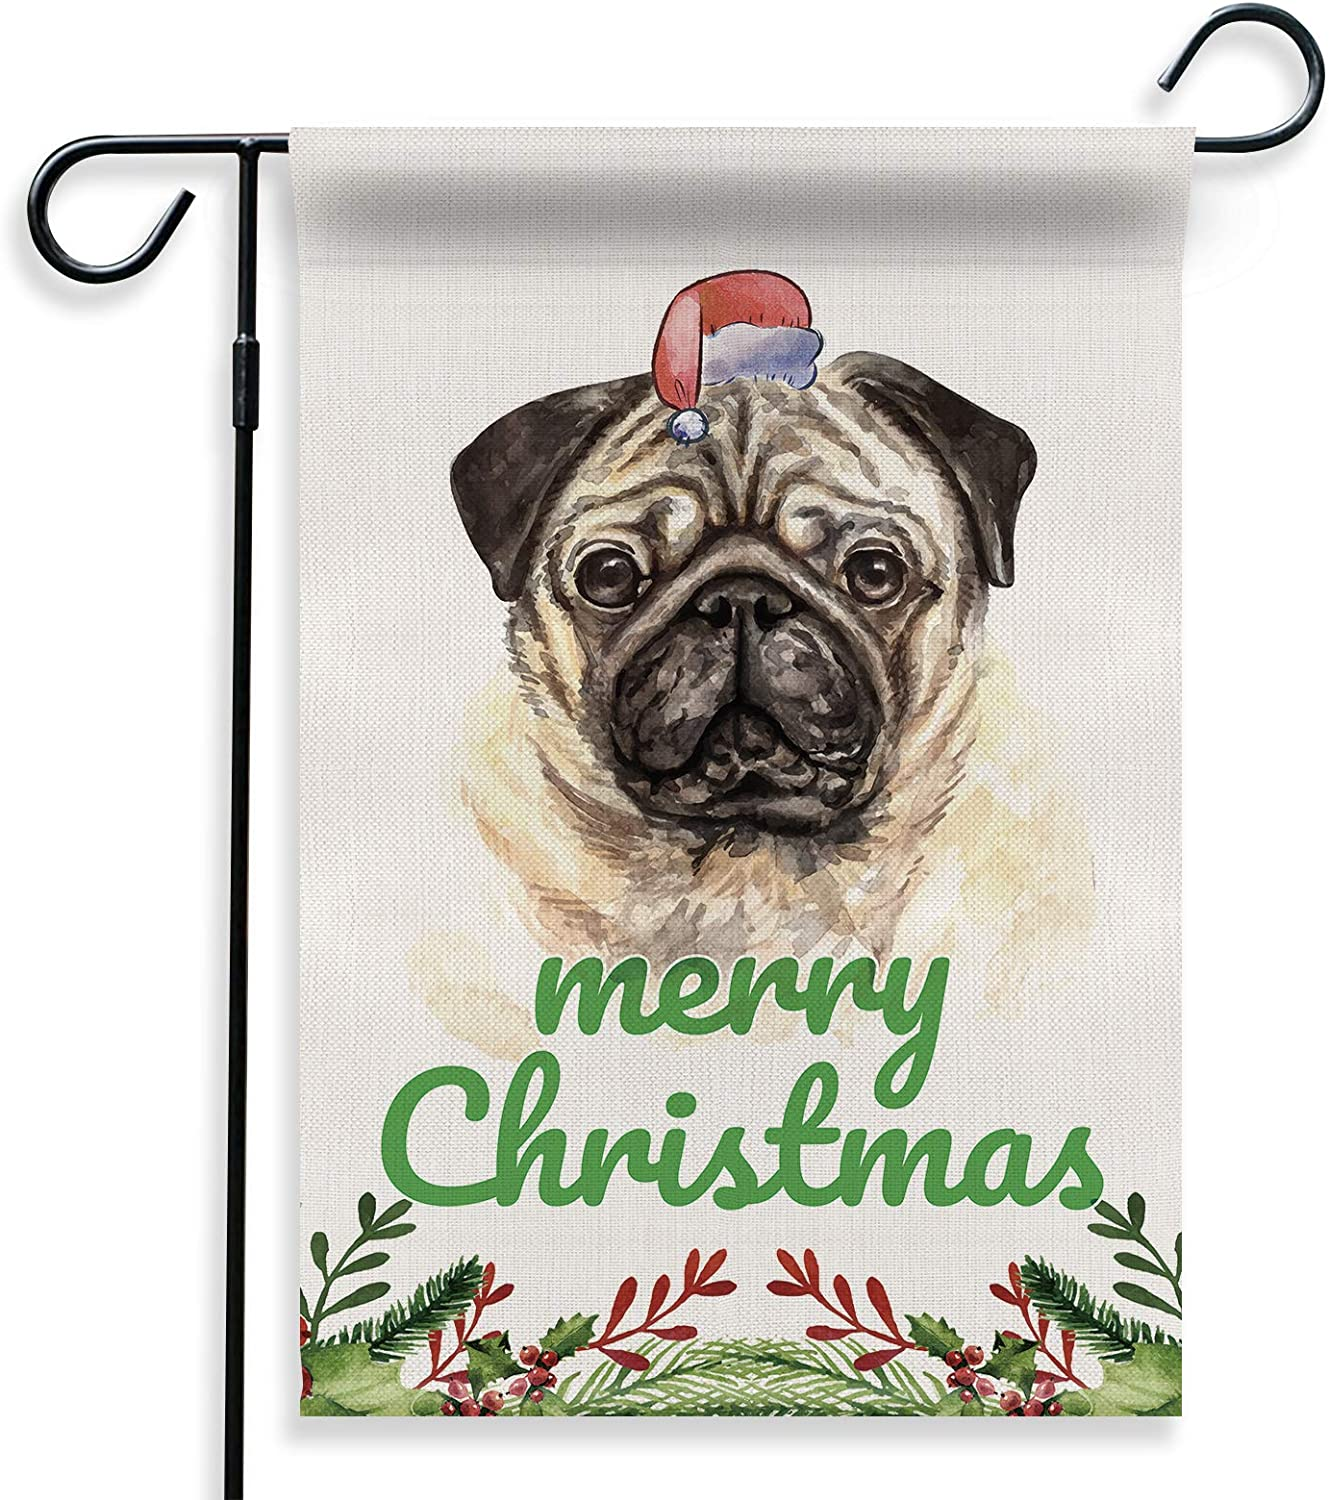 BellowDeer Pug Dog Merry Christmas Xmas Double-Sided Yard Garden Flag Decor for Dog Lover, Dog Owner, Friend, House Yard Garden Indoor Outdoor Decoration